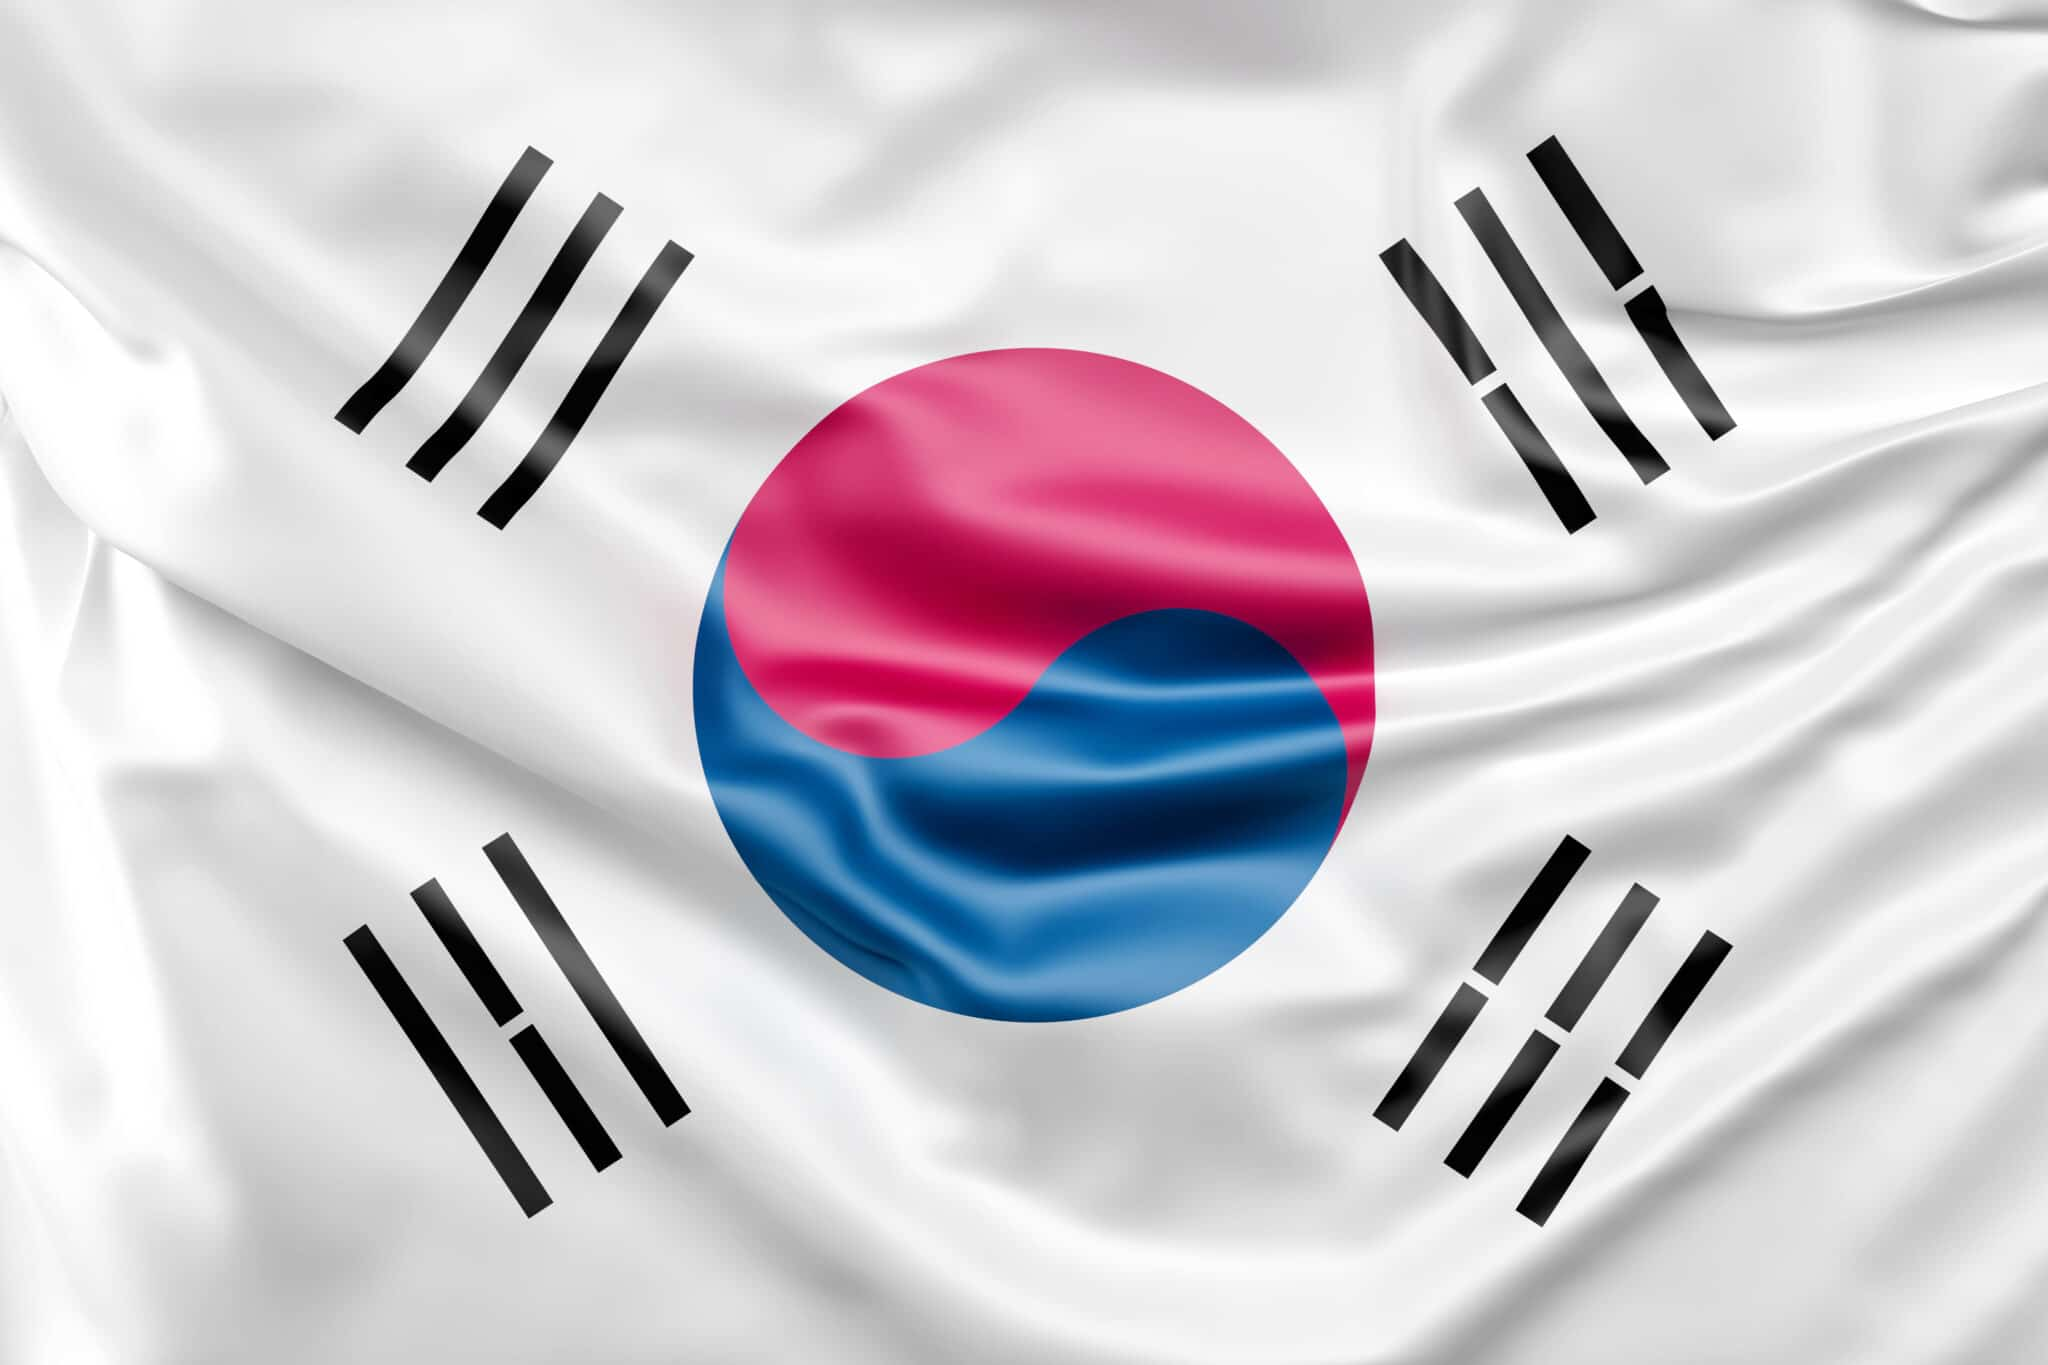 South Korea sells confiscated bitcoins